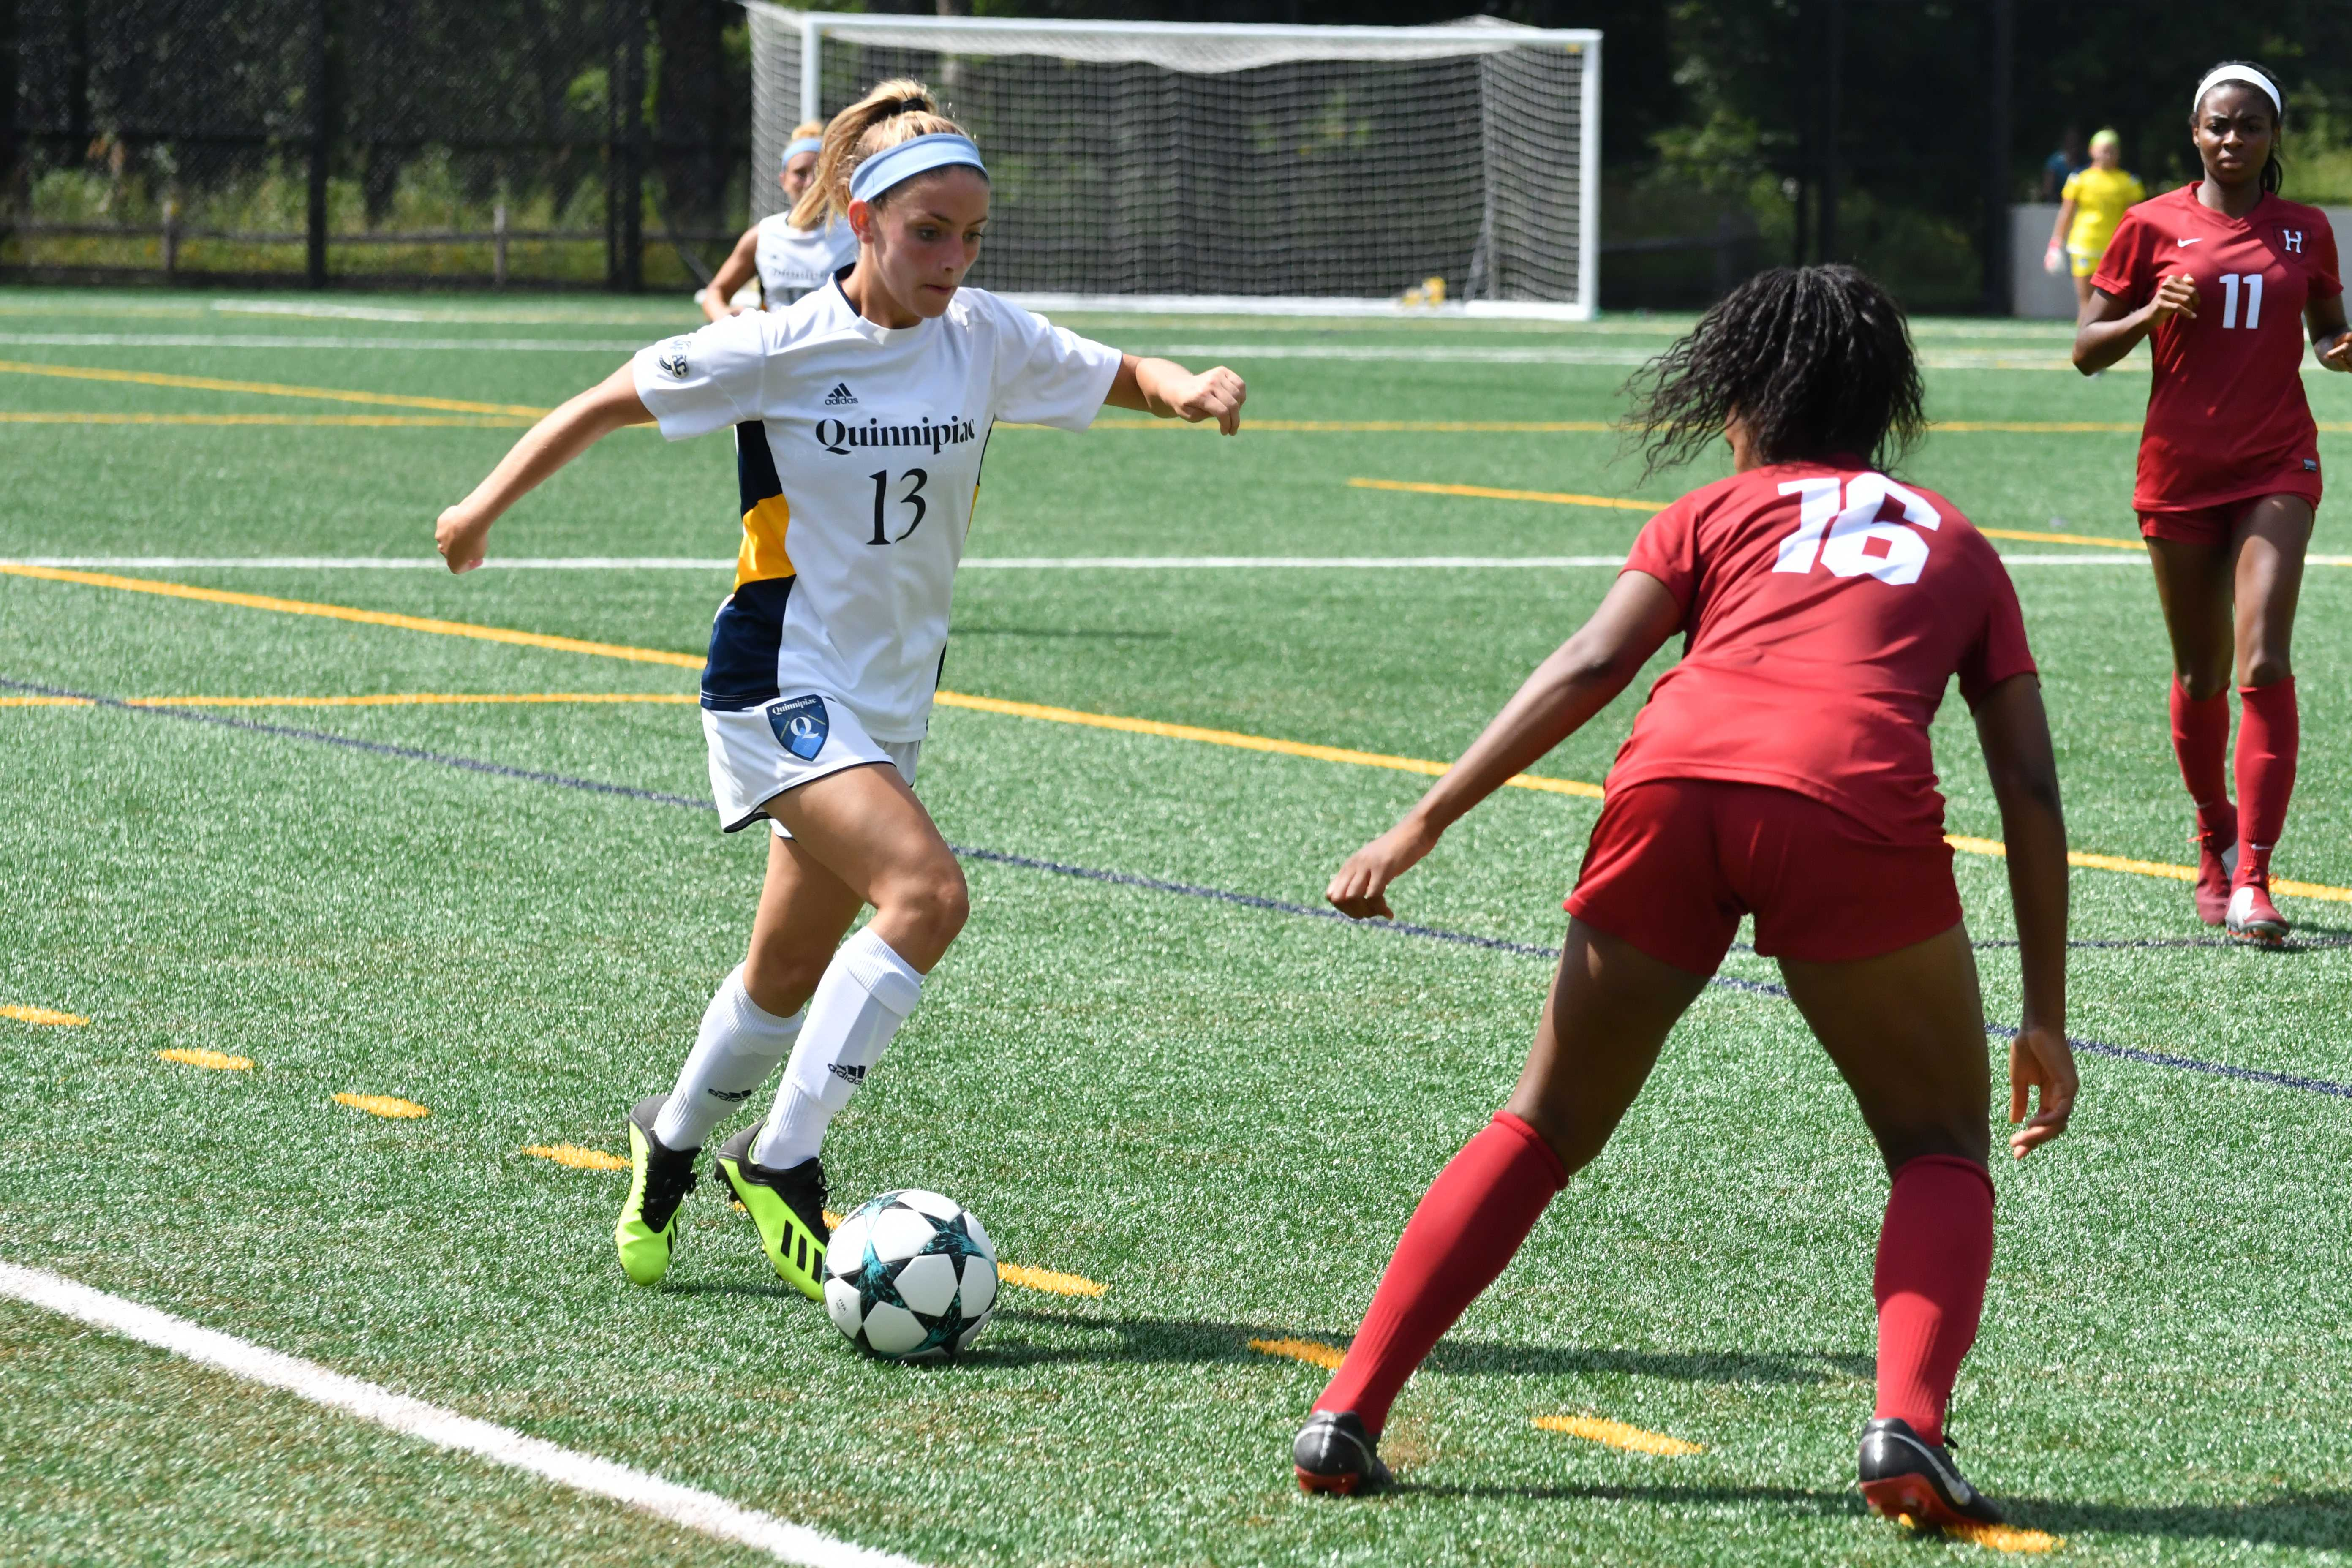 Quinnipiac women's soccer blanked by Harvard